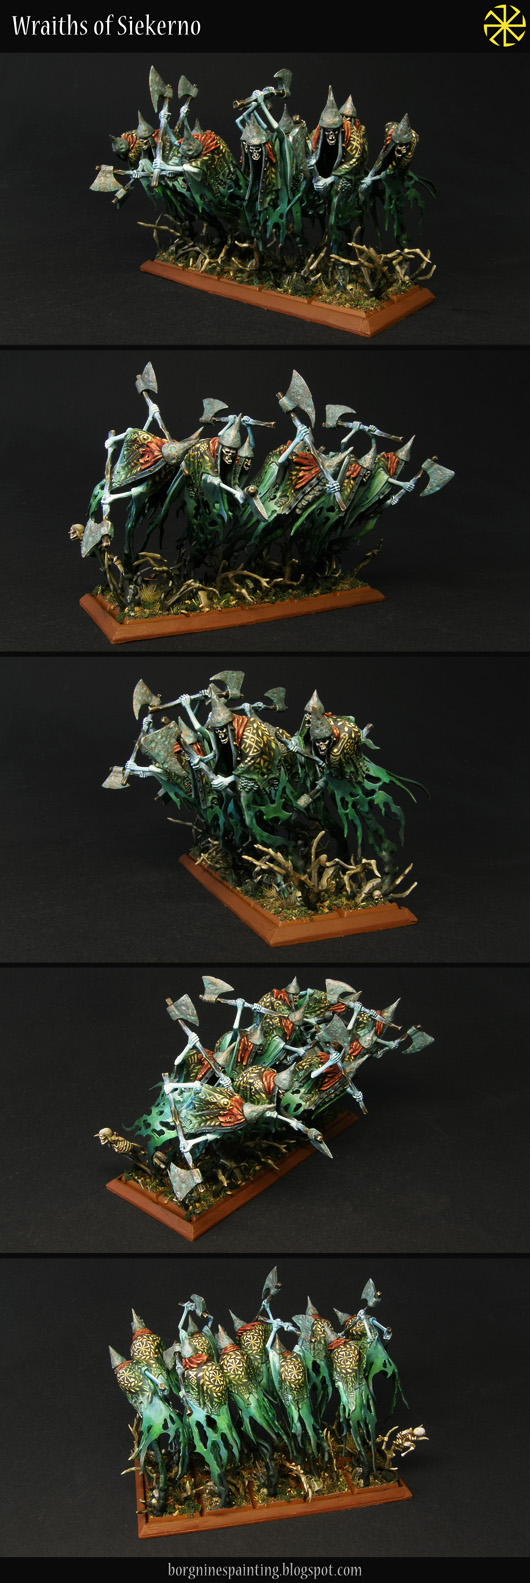 Unit of 10 converted Grimghast Reapers miniatures from Age of Sigmar (AoS), made to fit tightly together as Cairn Wraiths for Warhammer Fantasy Battle (WFB).